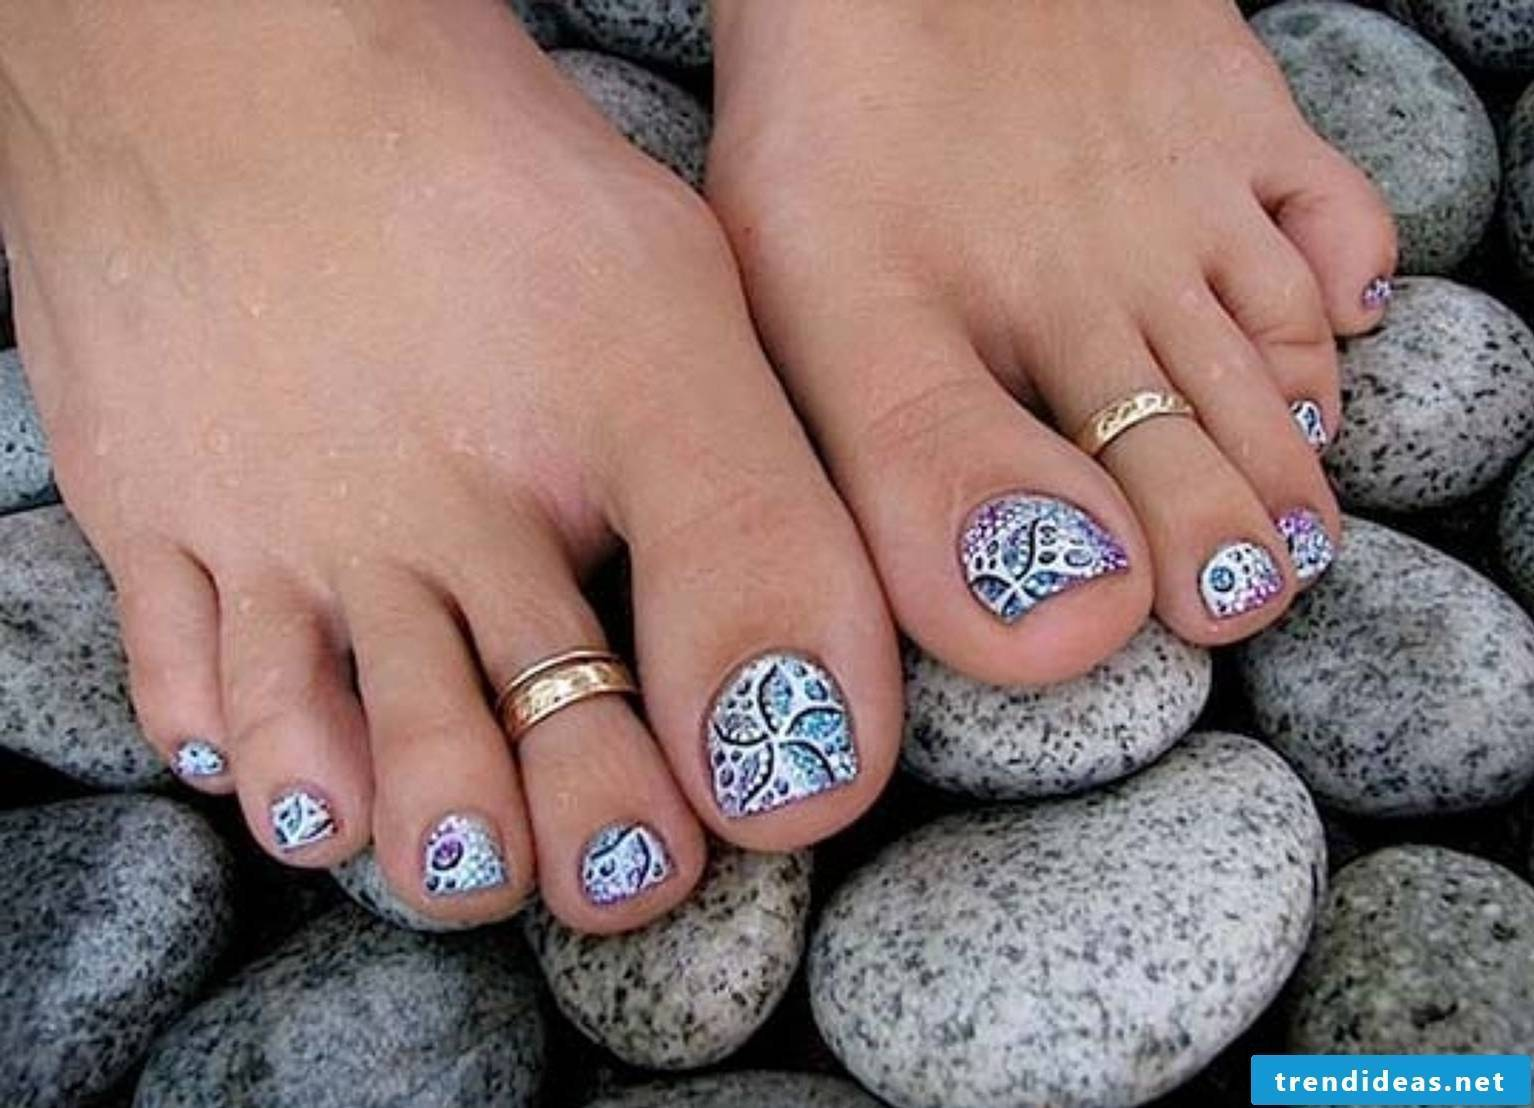 Cool foot nail polish idea - a real eye-catcher